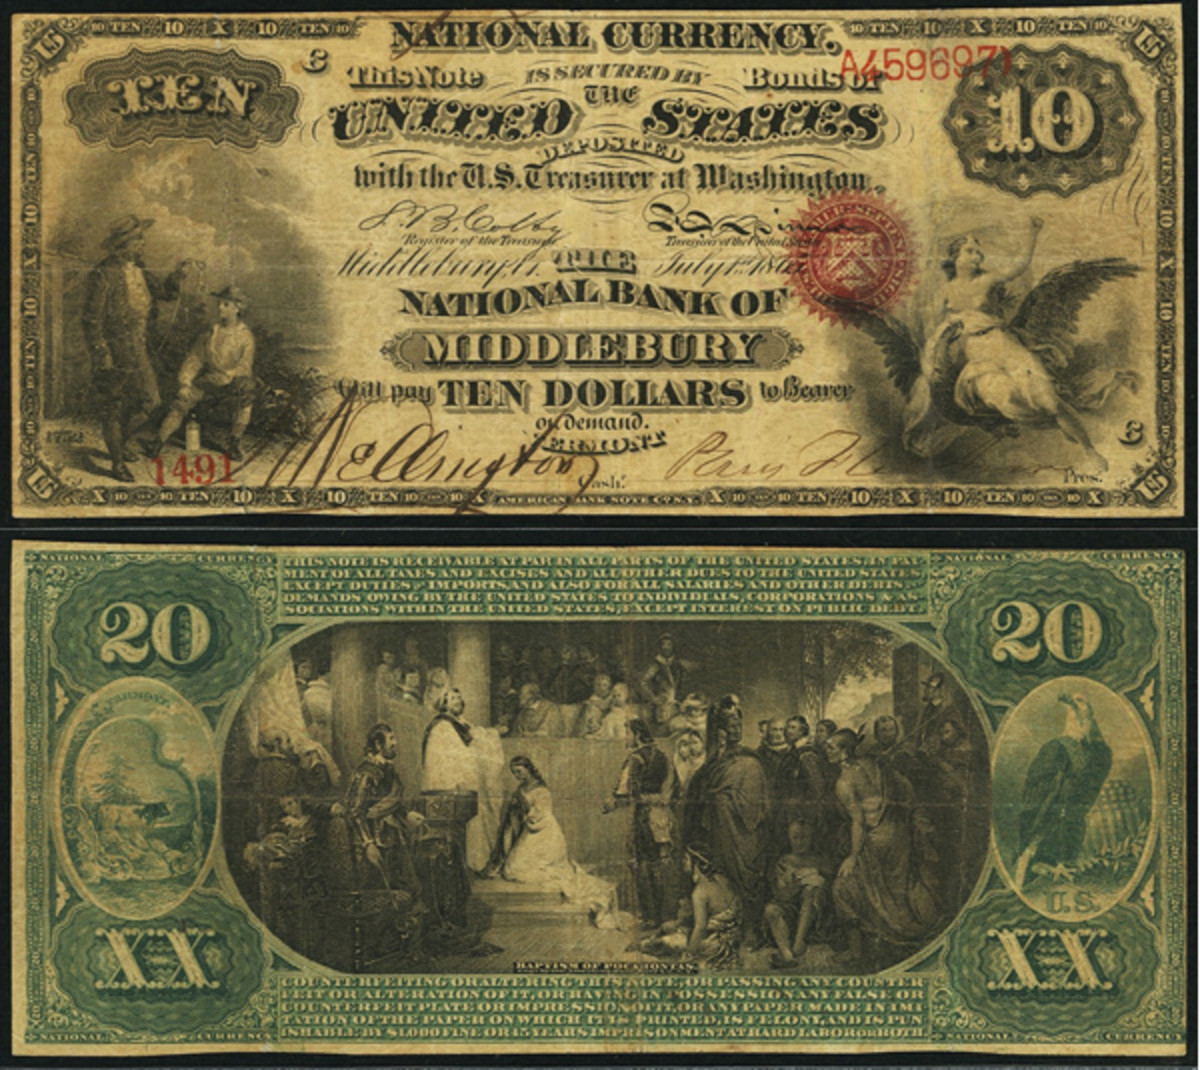 A double denomination $10/$20 is a rare Original Series note.